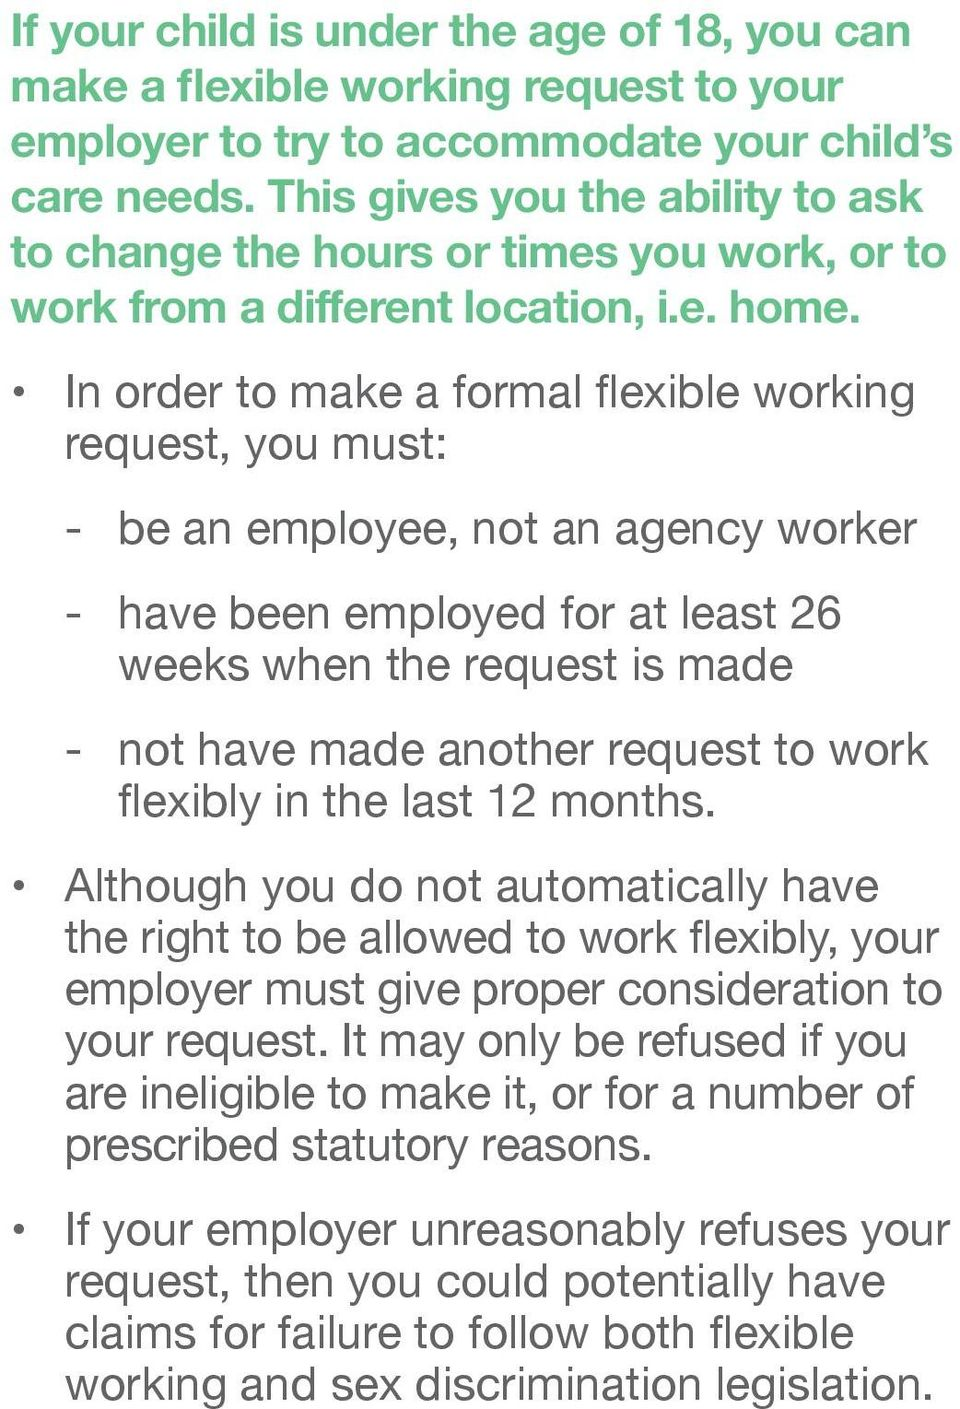 In order to make a formal flexible working request, you must: - be an employee, not an agency worker - have been employed for at least 26 weeks when the request is made - not have made another